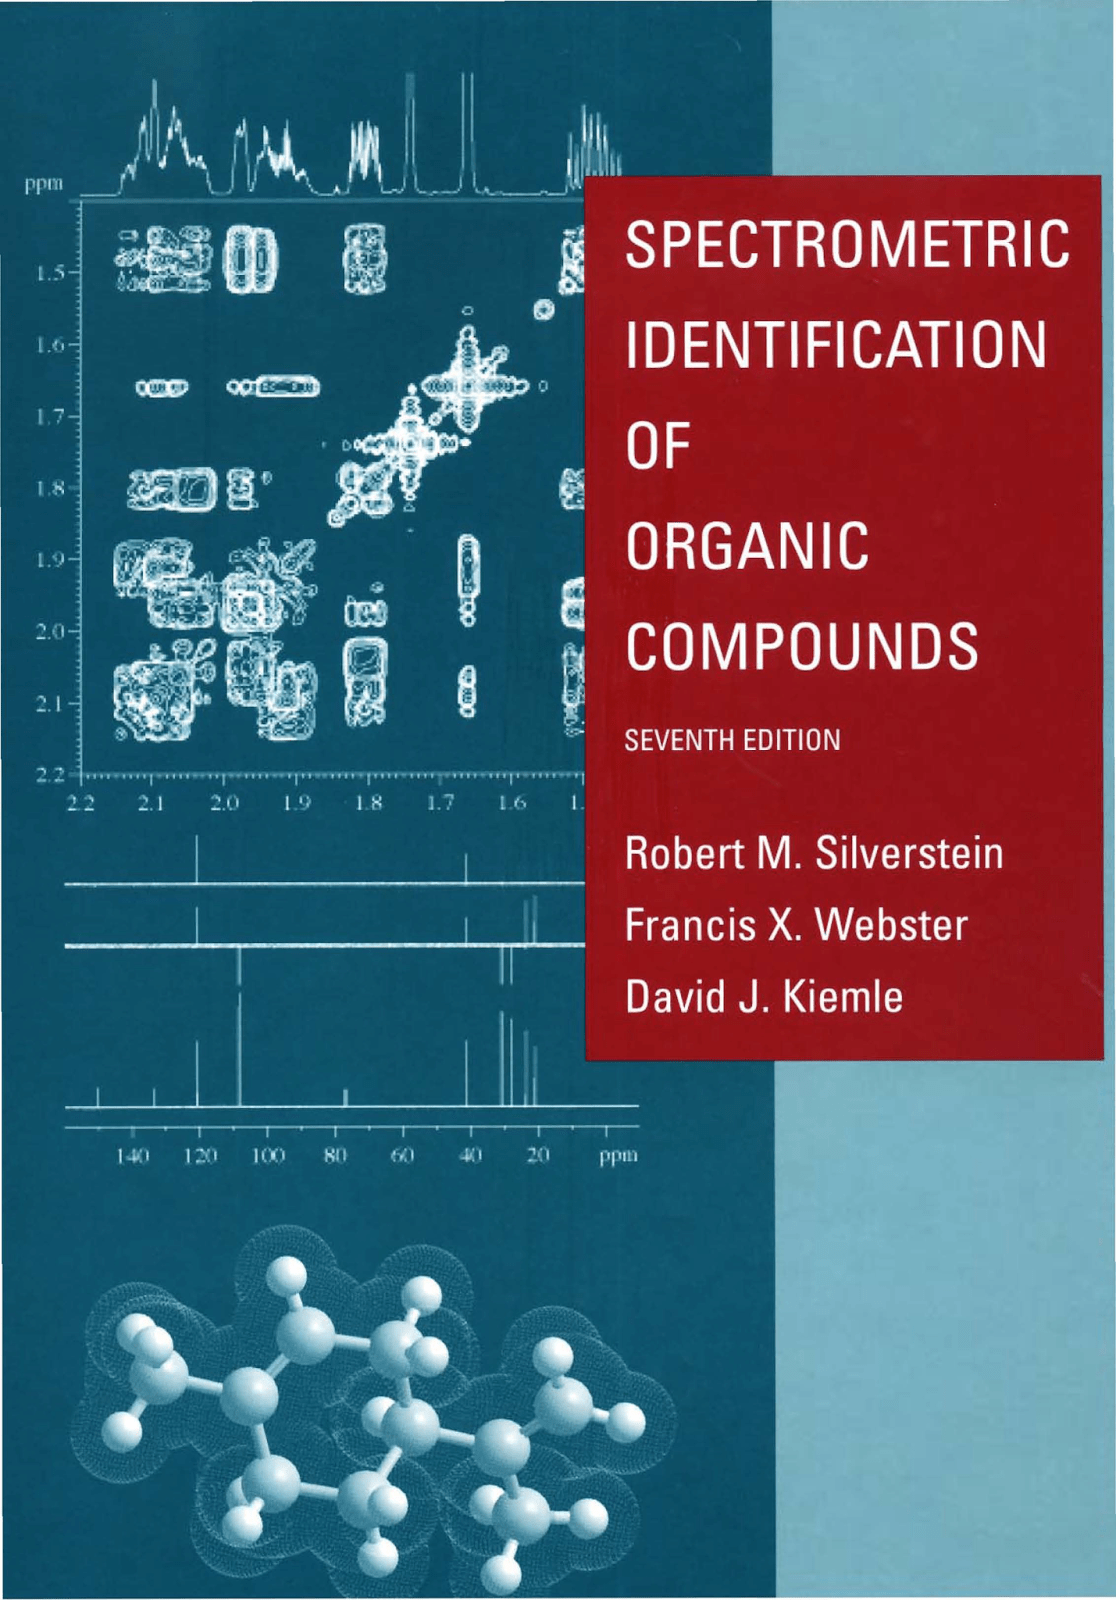 Libro Resonancia Magnetica Spectrometric Identification Of Organic Compounds R M Silverstein